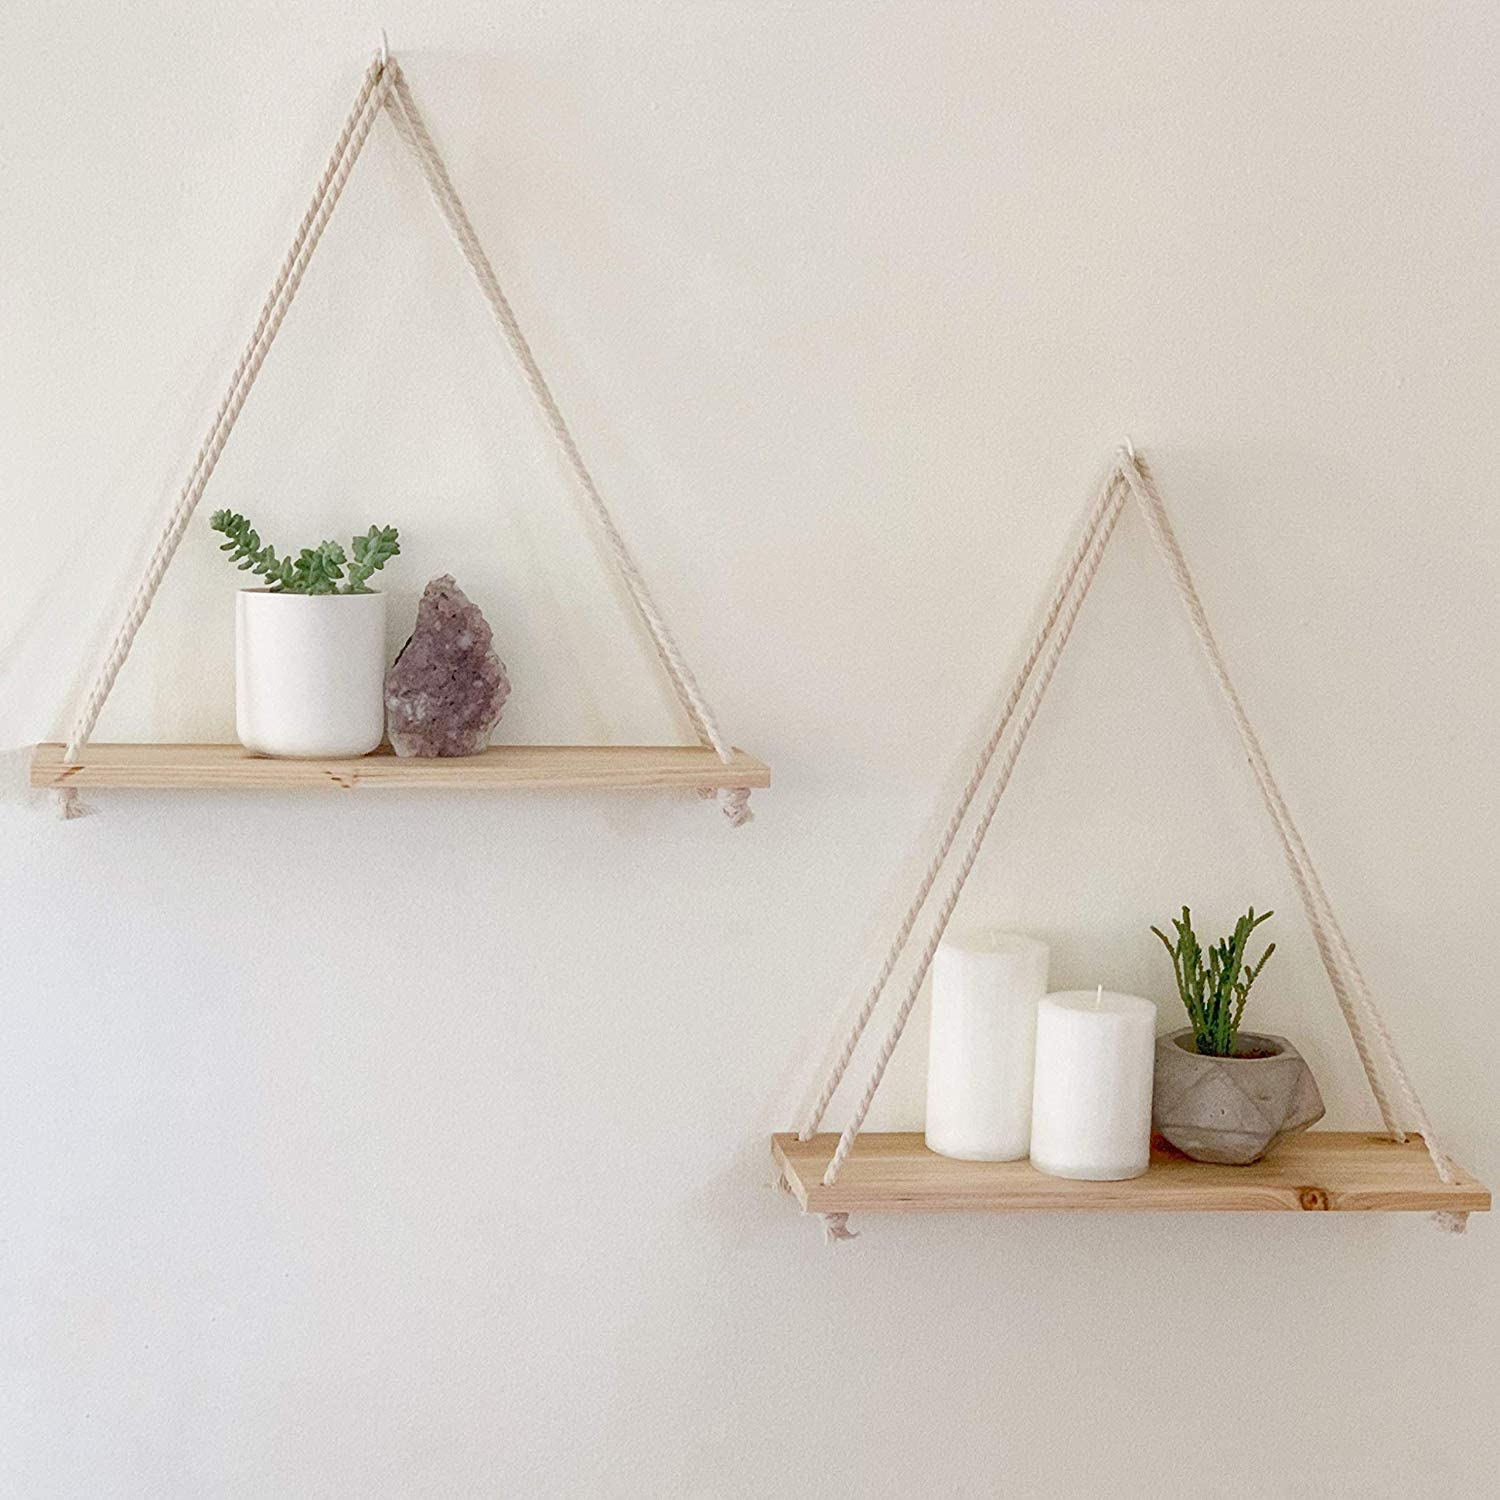 home decor ideas - hanging boho chic shelves with candles and plants